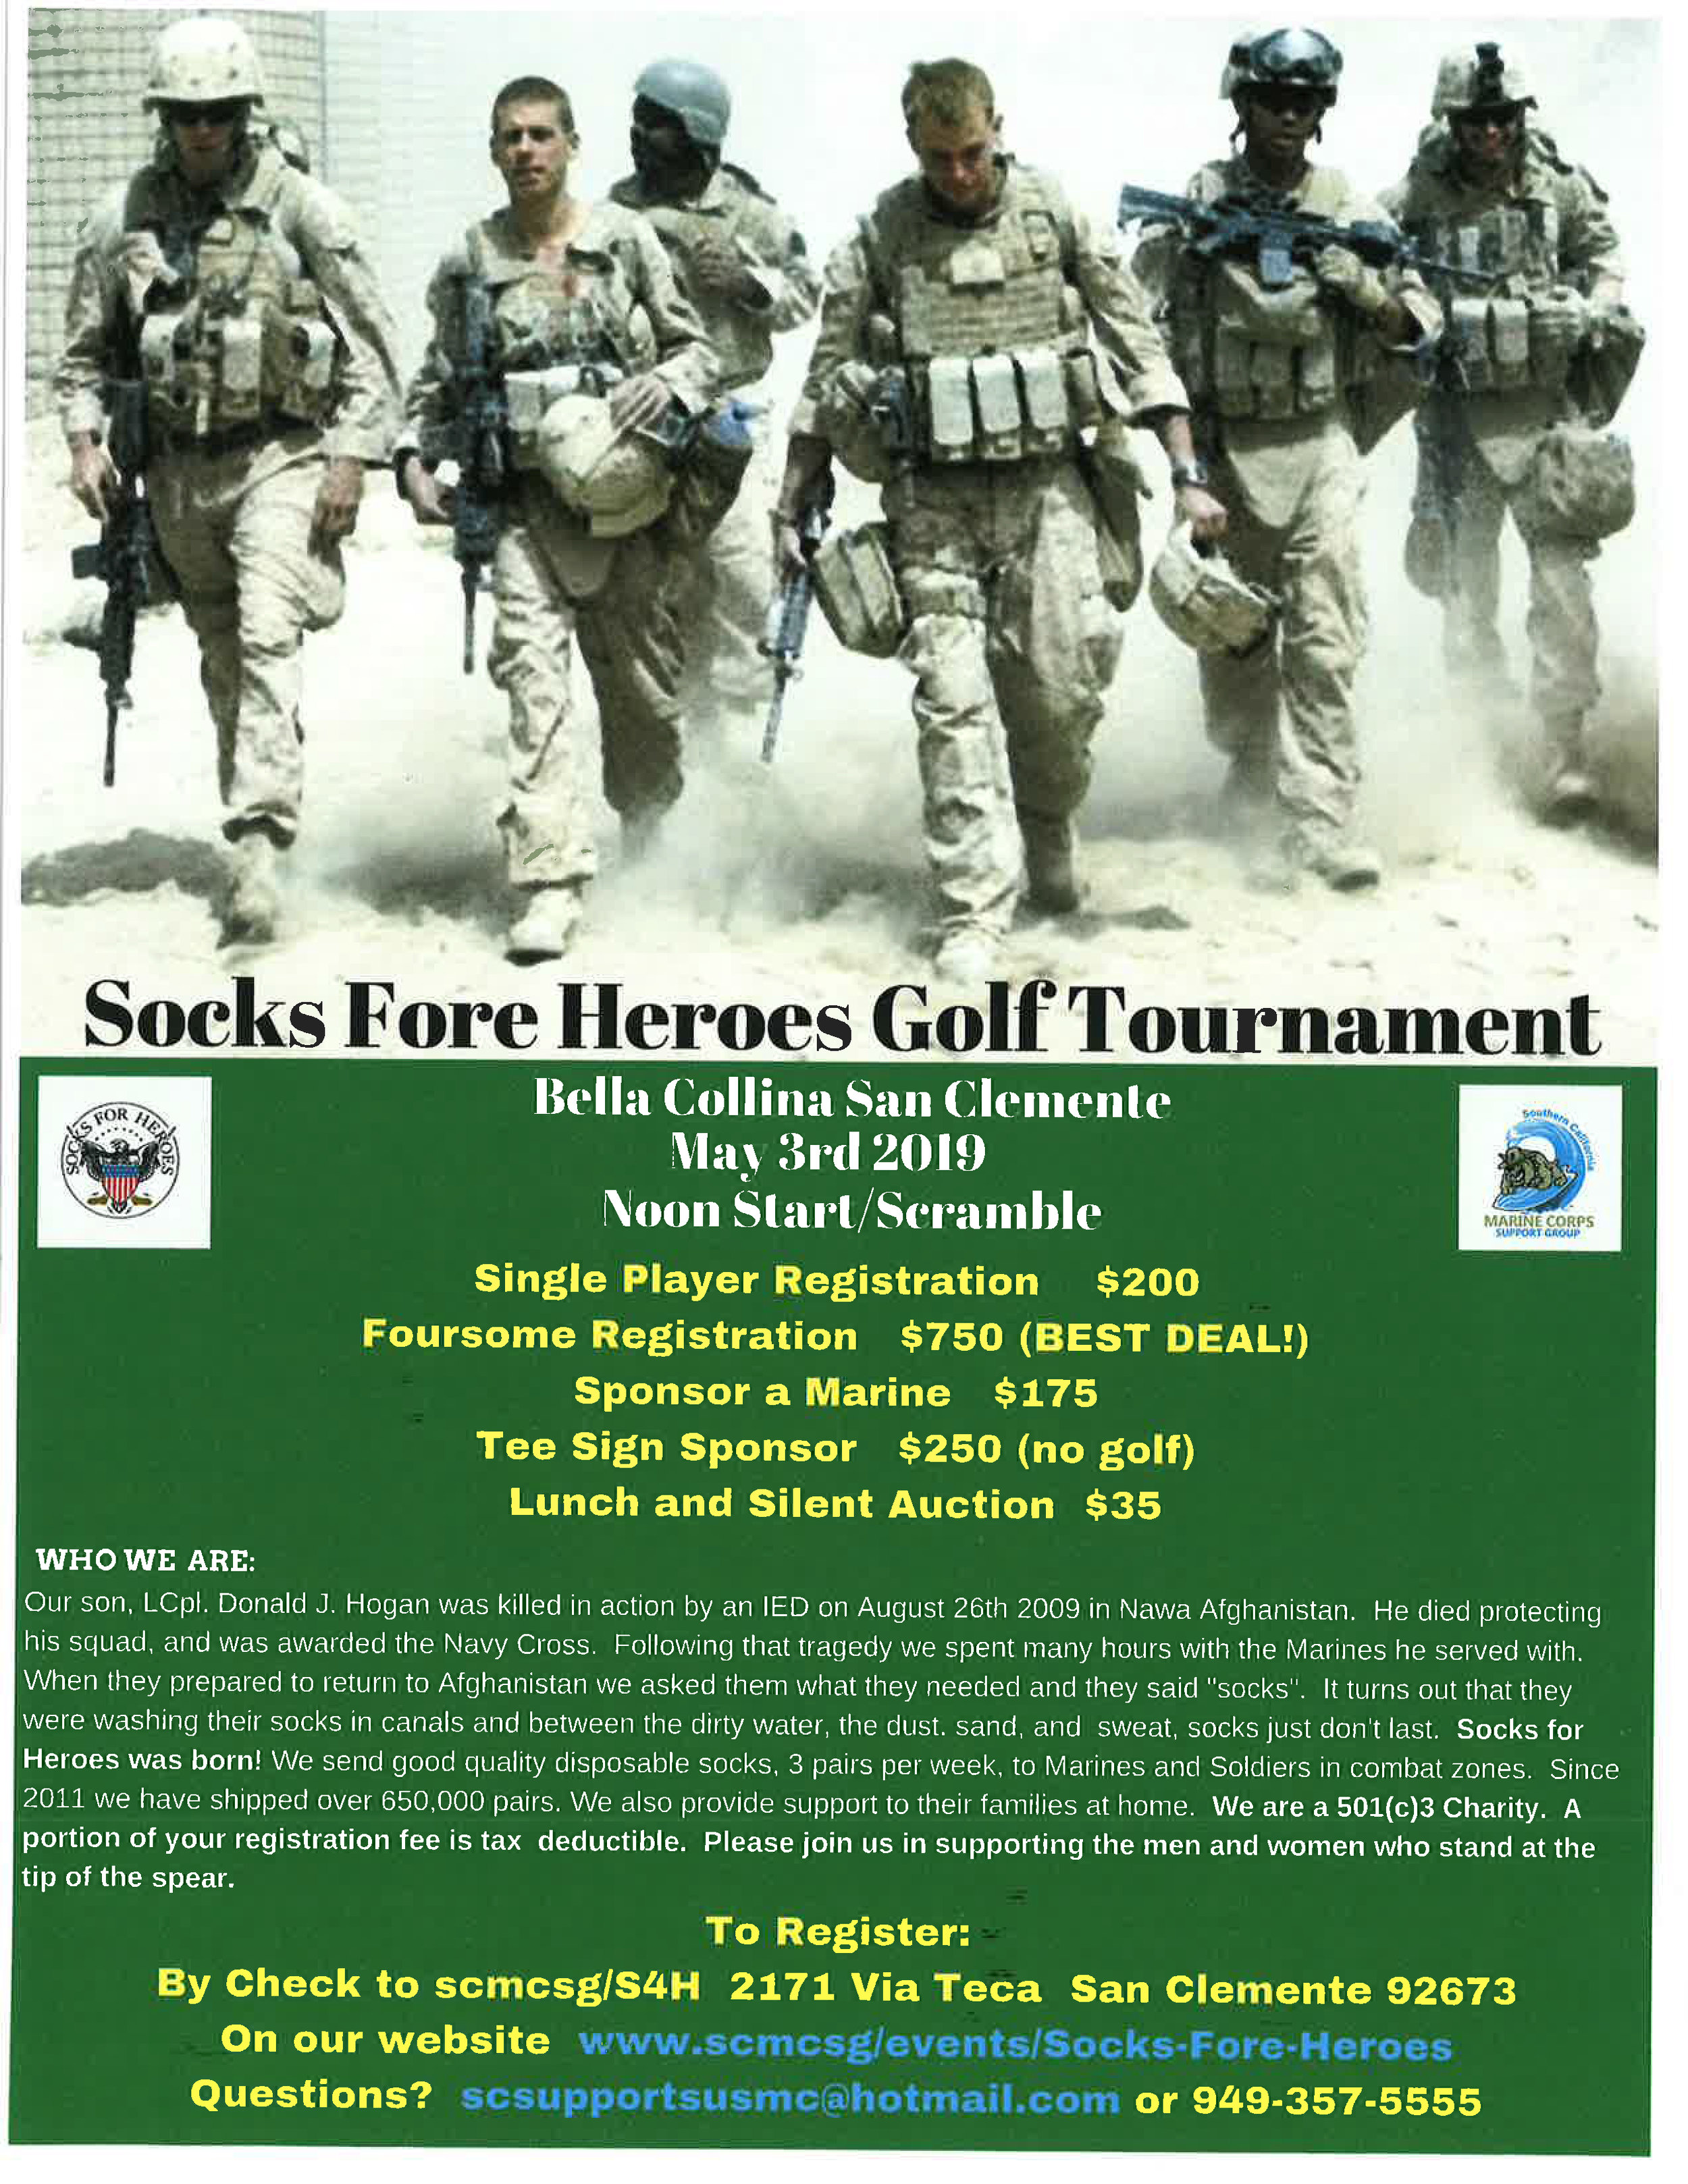 Socks Fore Heroes Golf Tournament Flyer.jpg